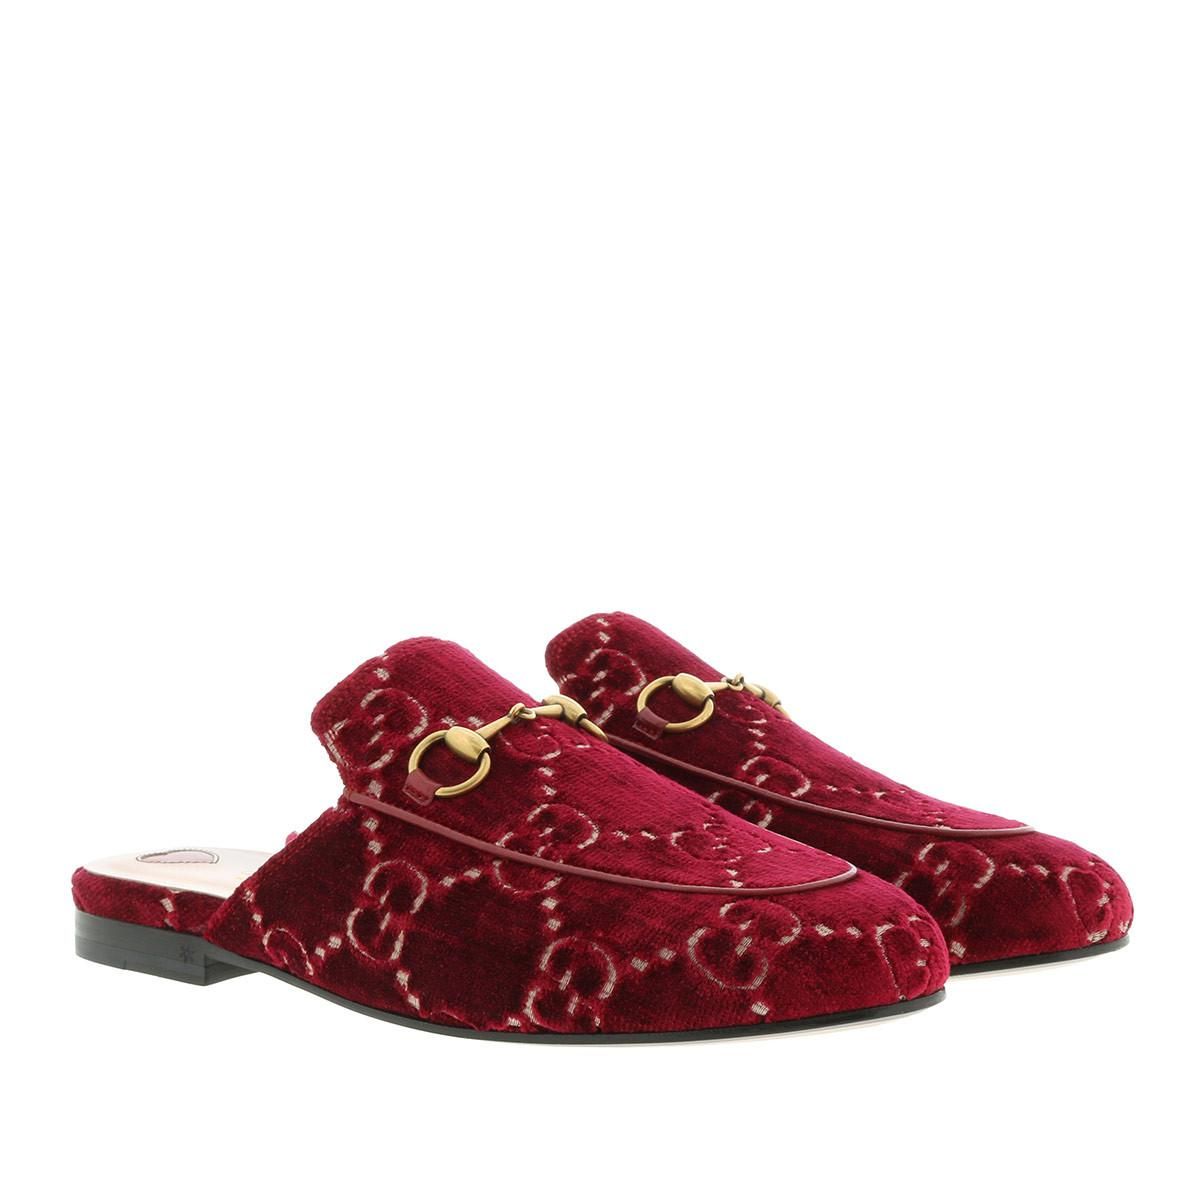 6ccab433d6f Gucci Princetown GG Velvet Slippers in Red - Save 4% - Lyst